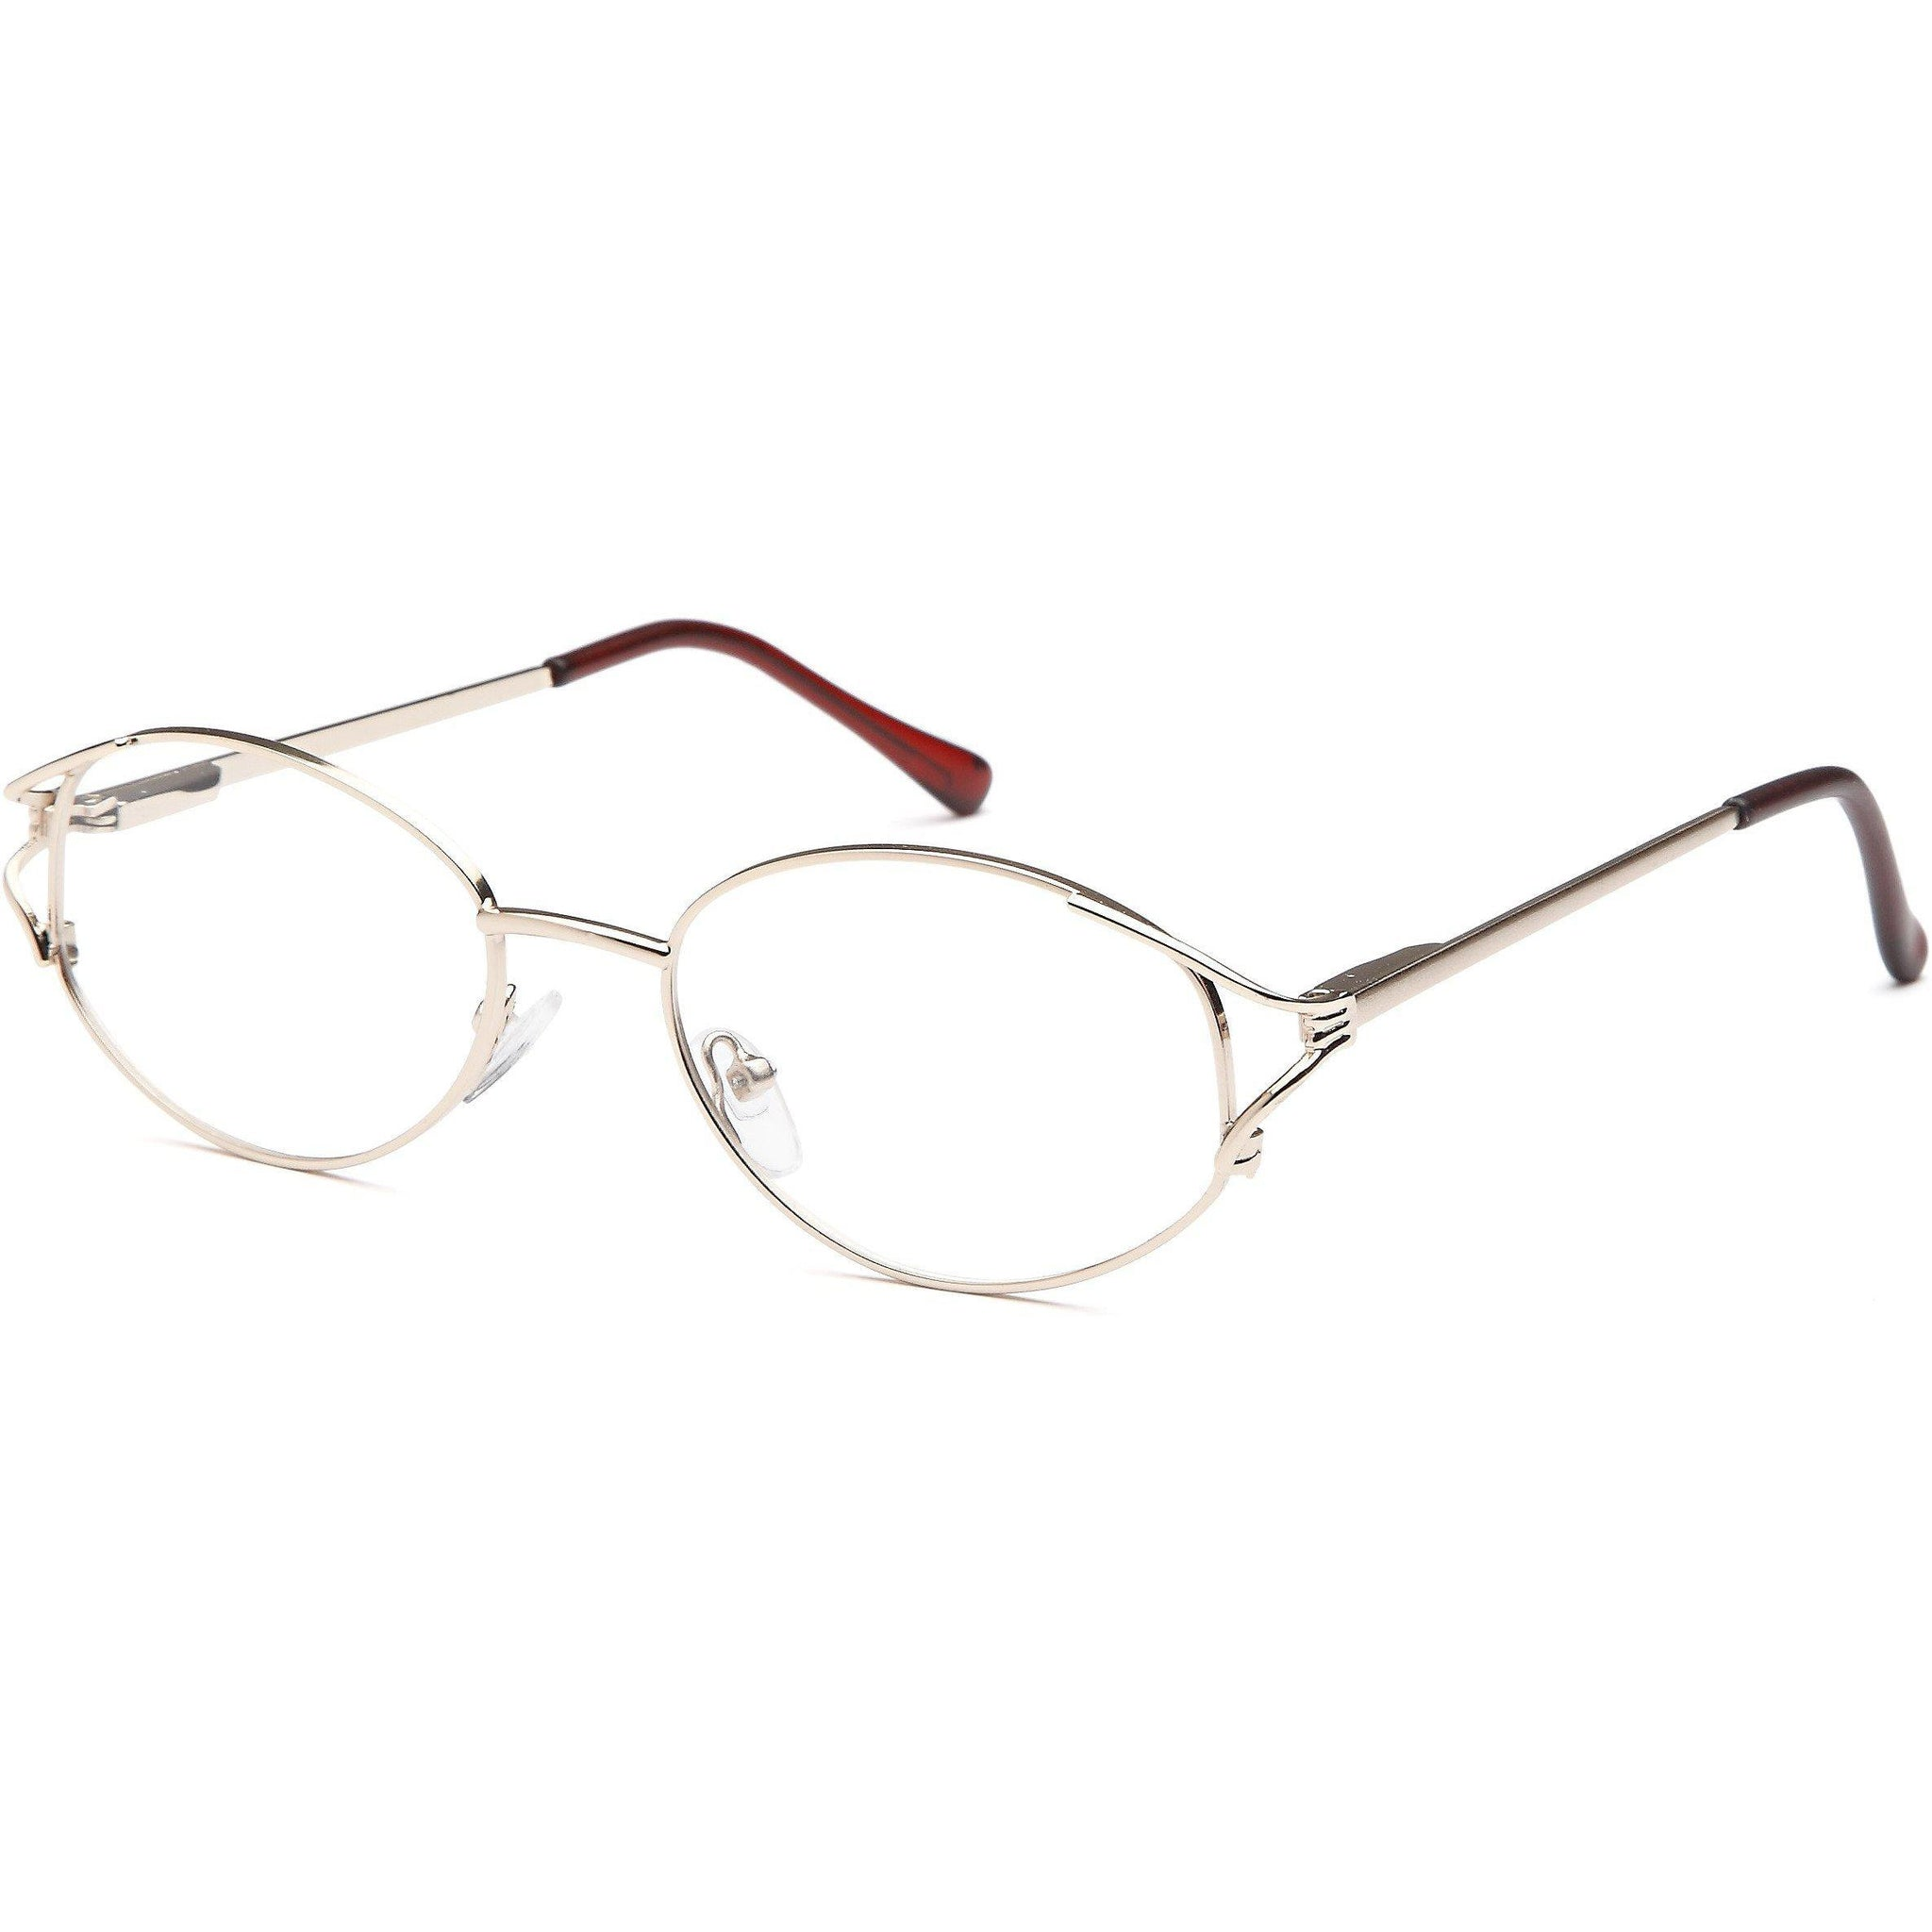 Appletree Prescription Glasses 7704 Eyeglasses Frame